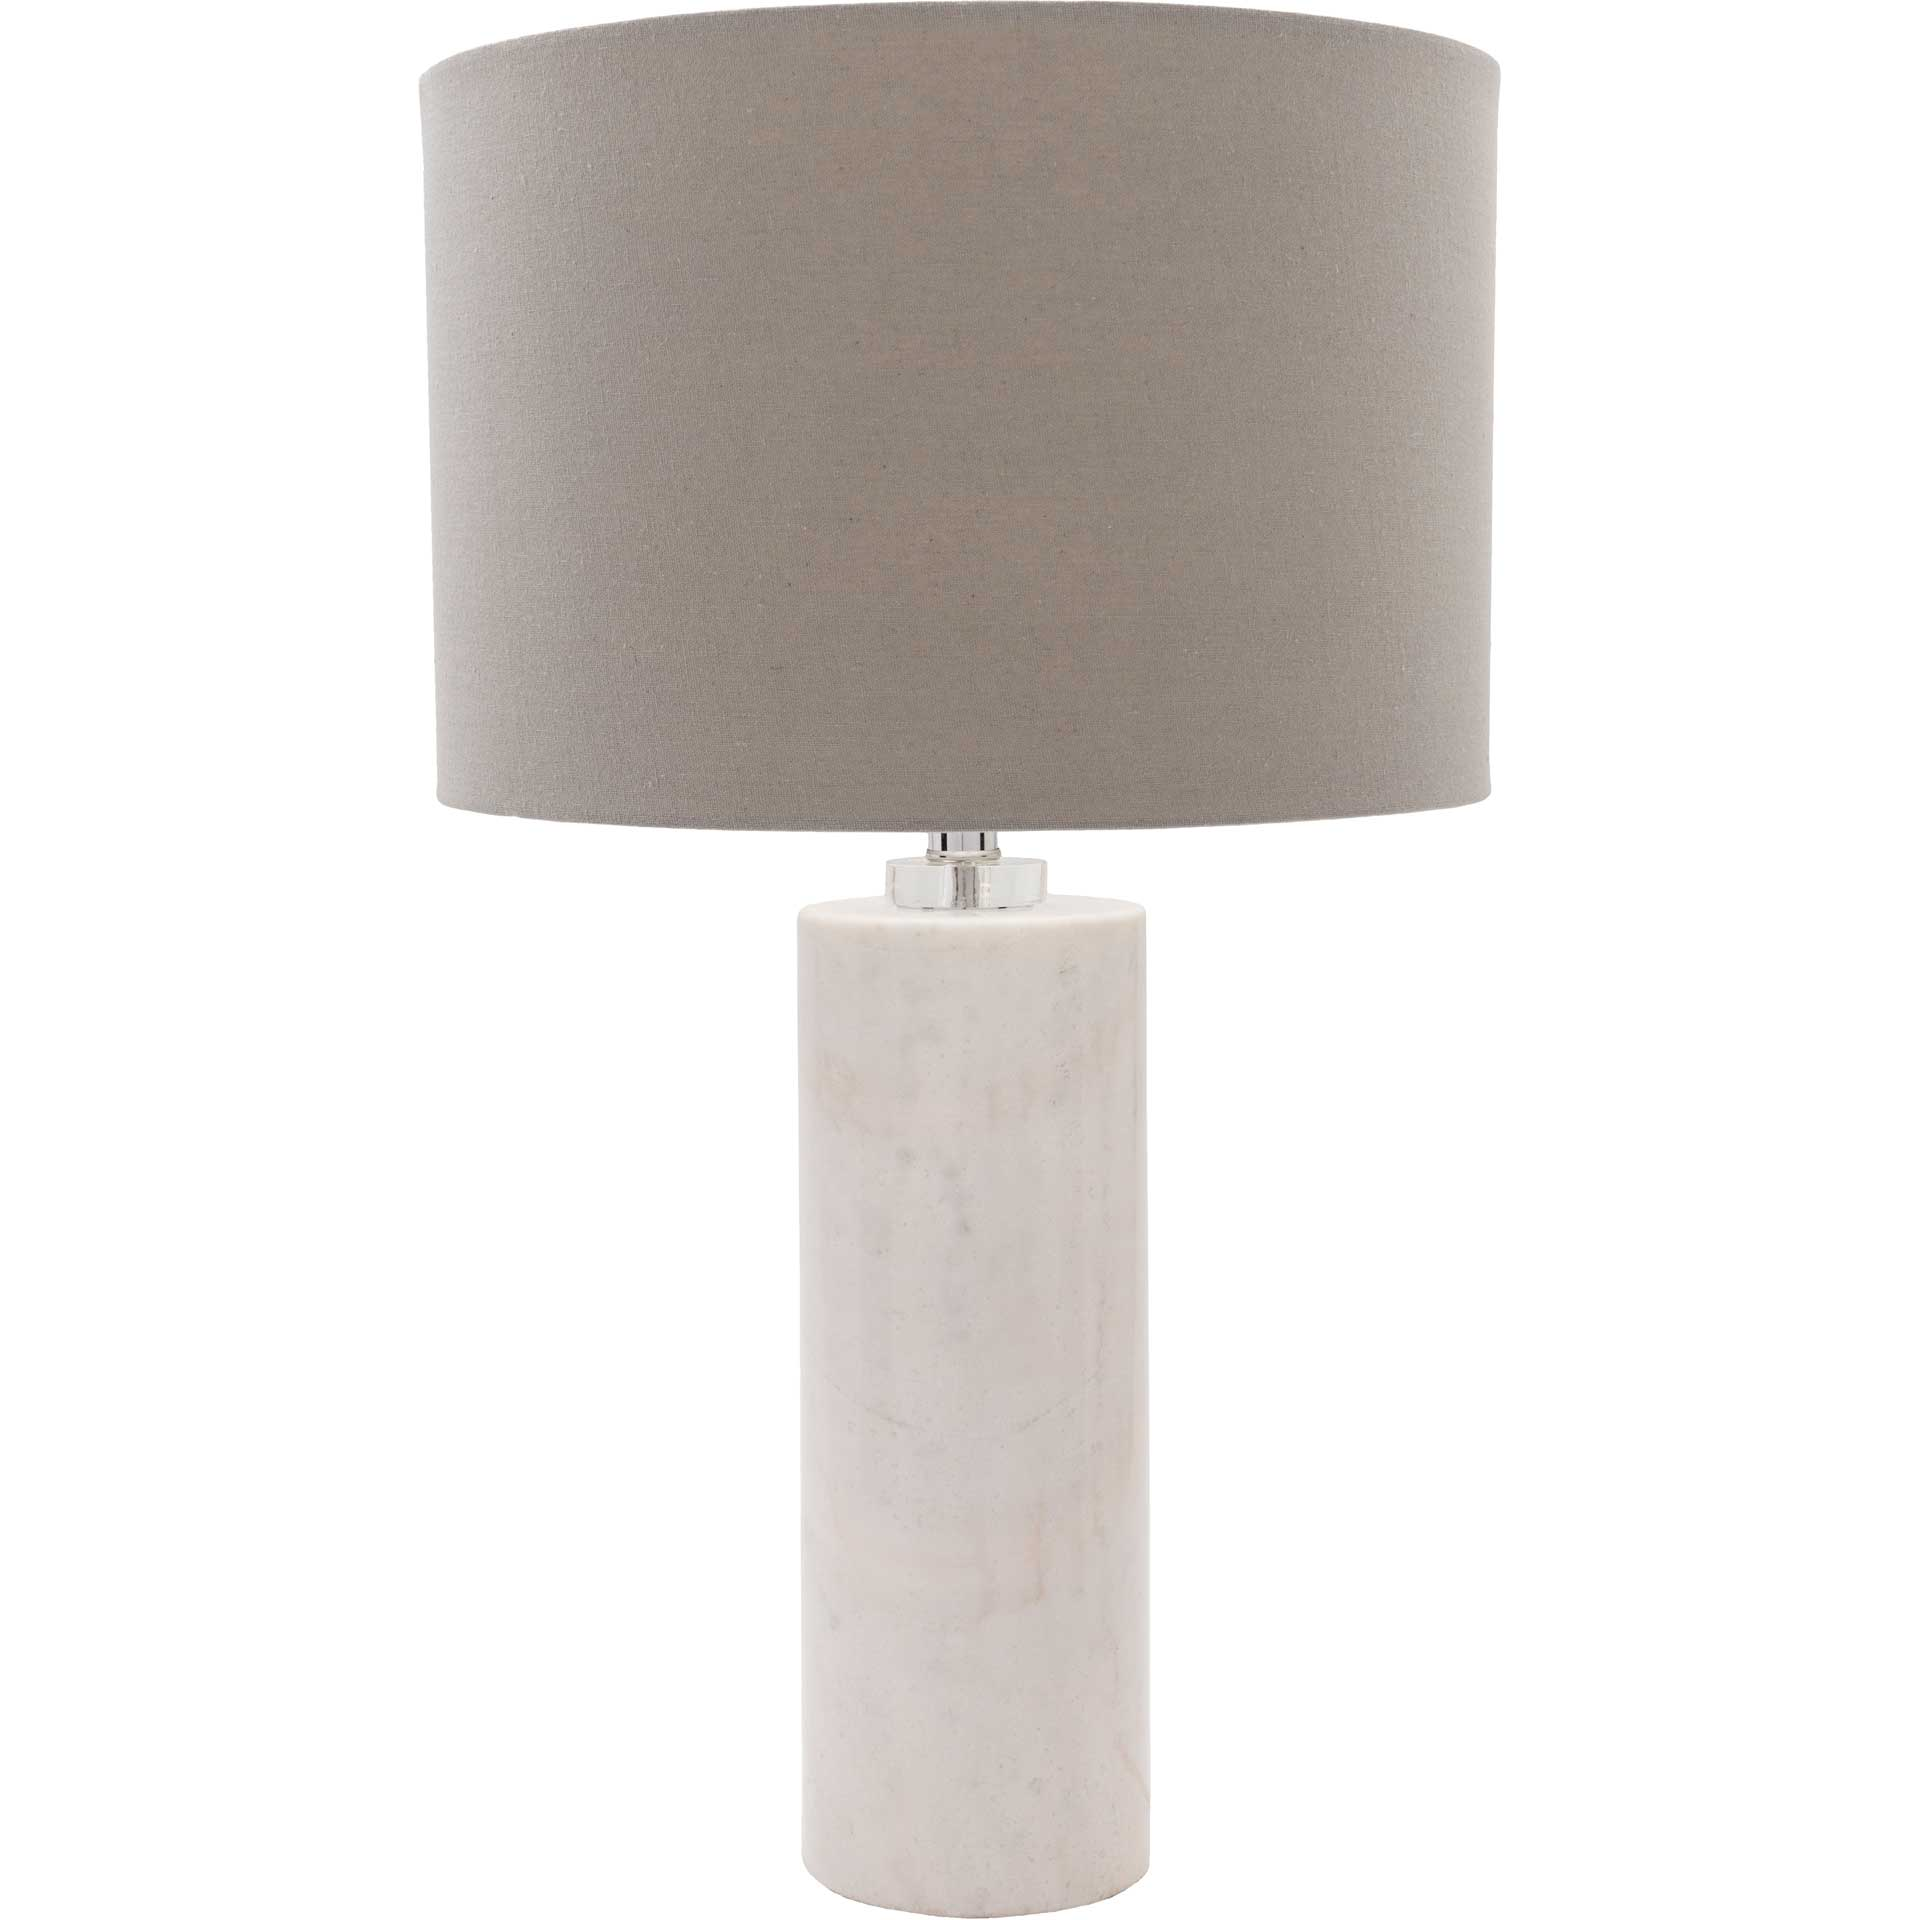 Robert Table Lamp Light Gray/White/Gray